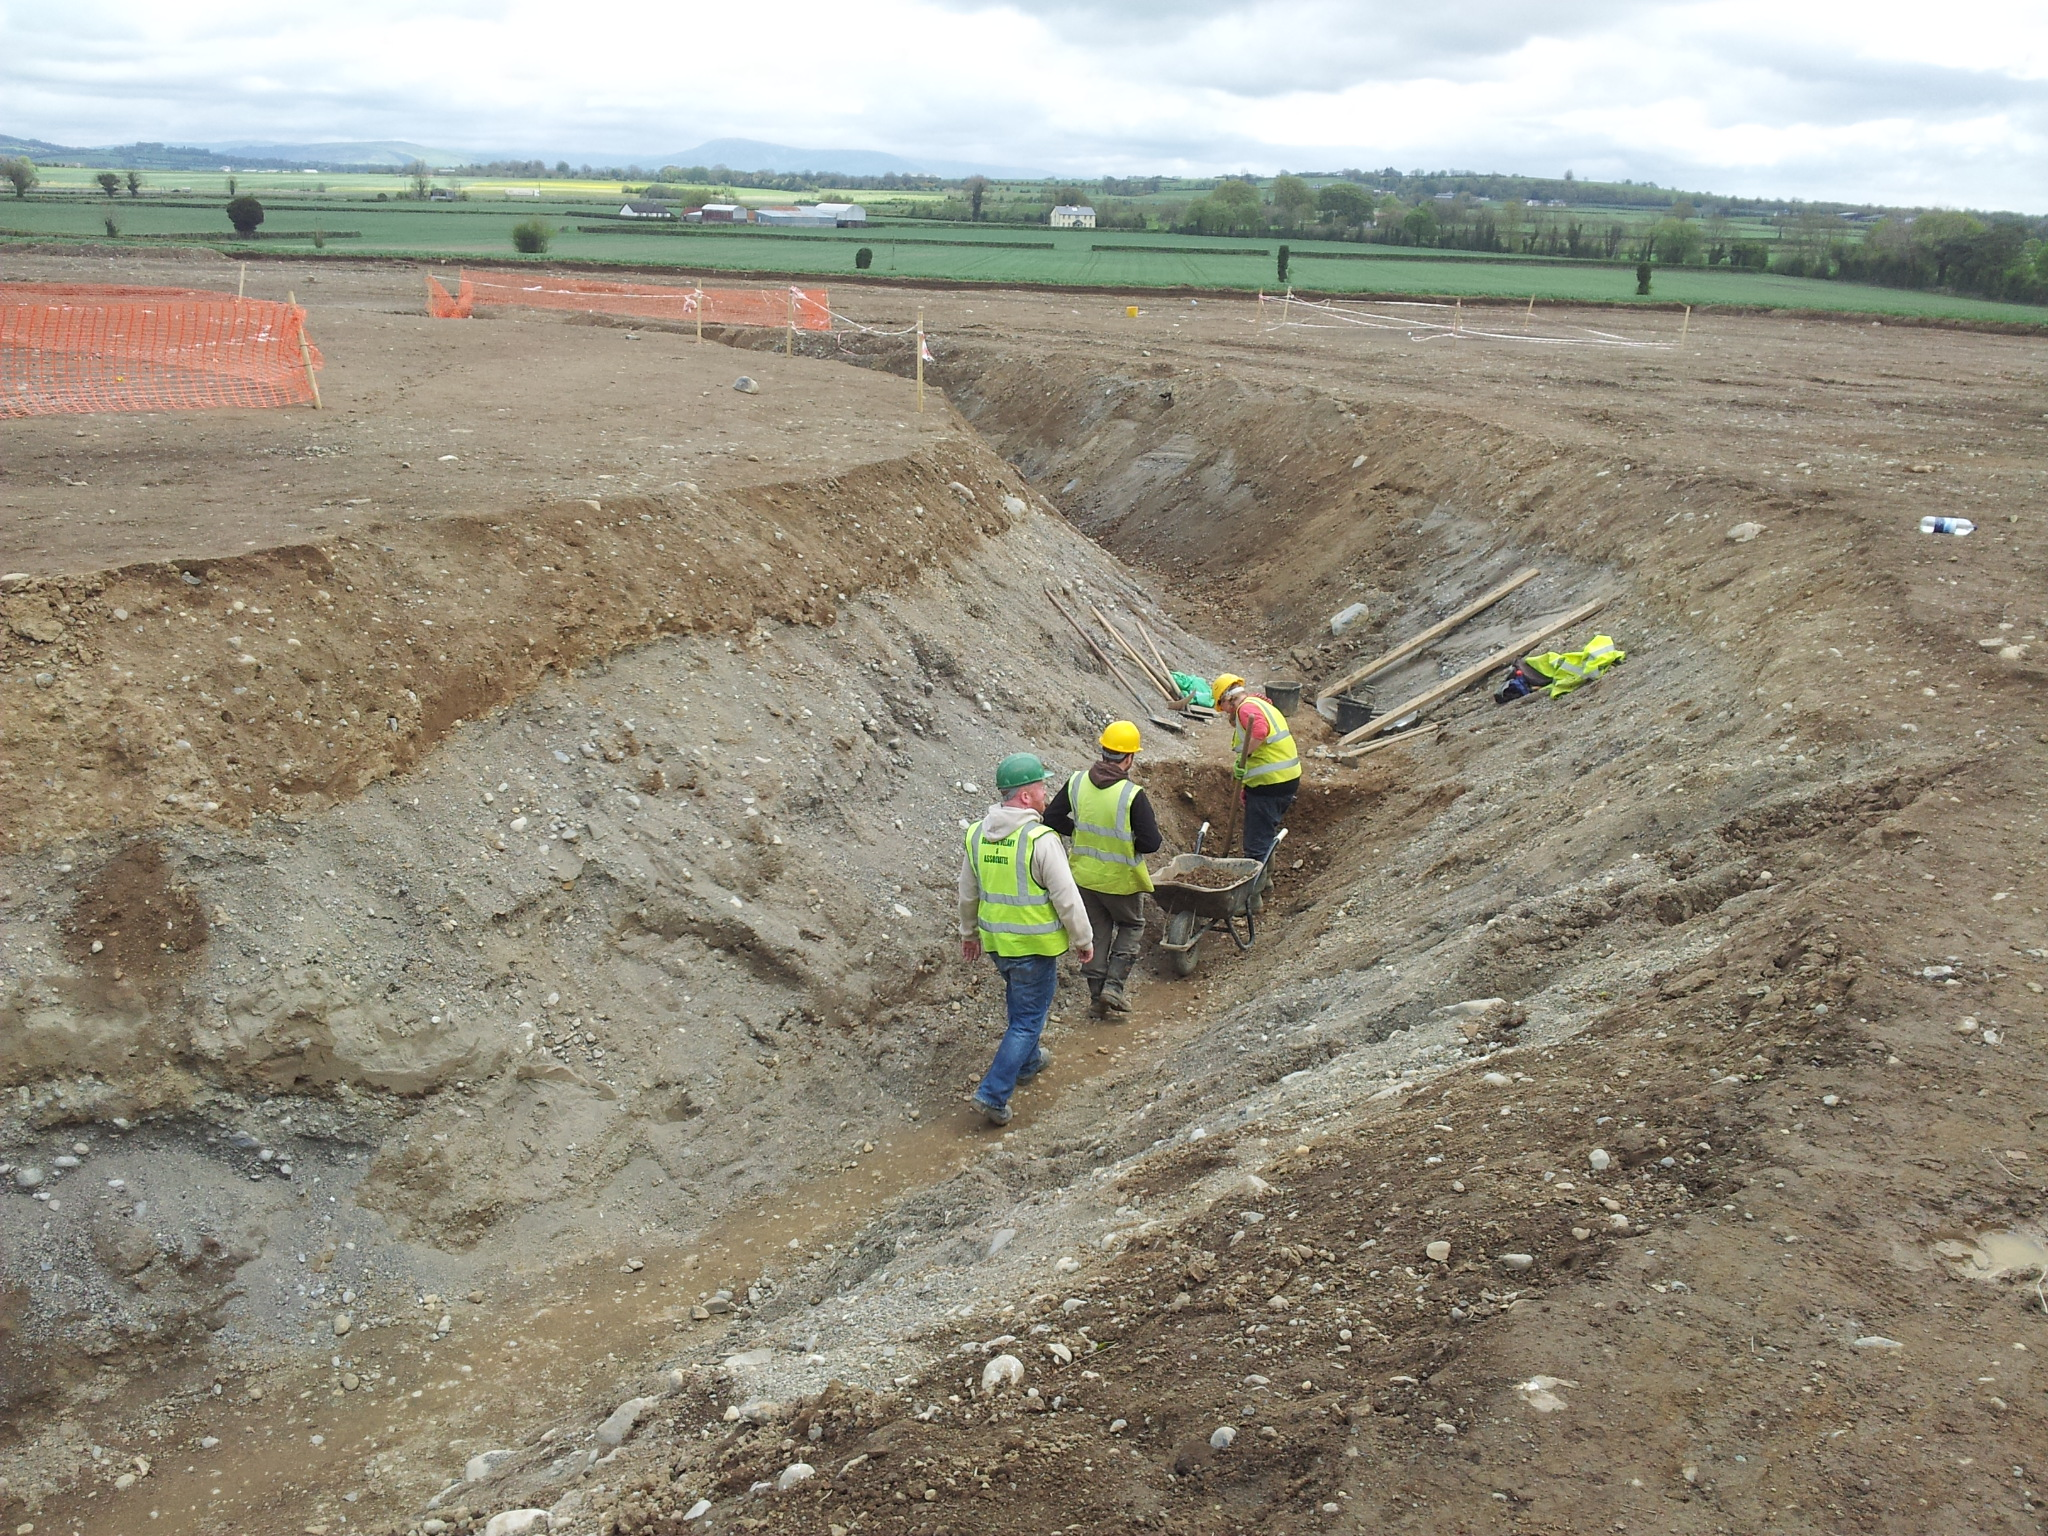 Excavating the iner ditch at Ballyburn Upper, Co. Kildare